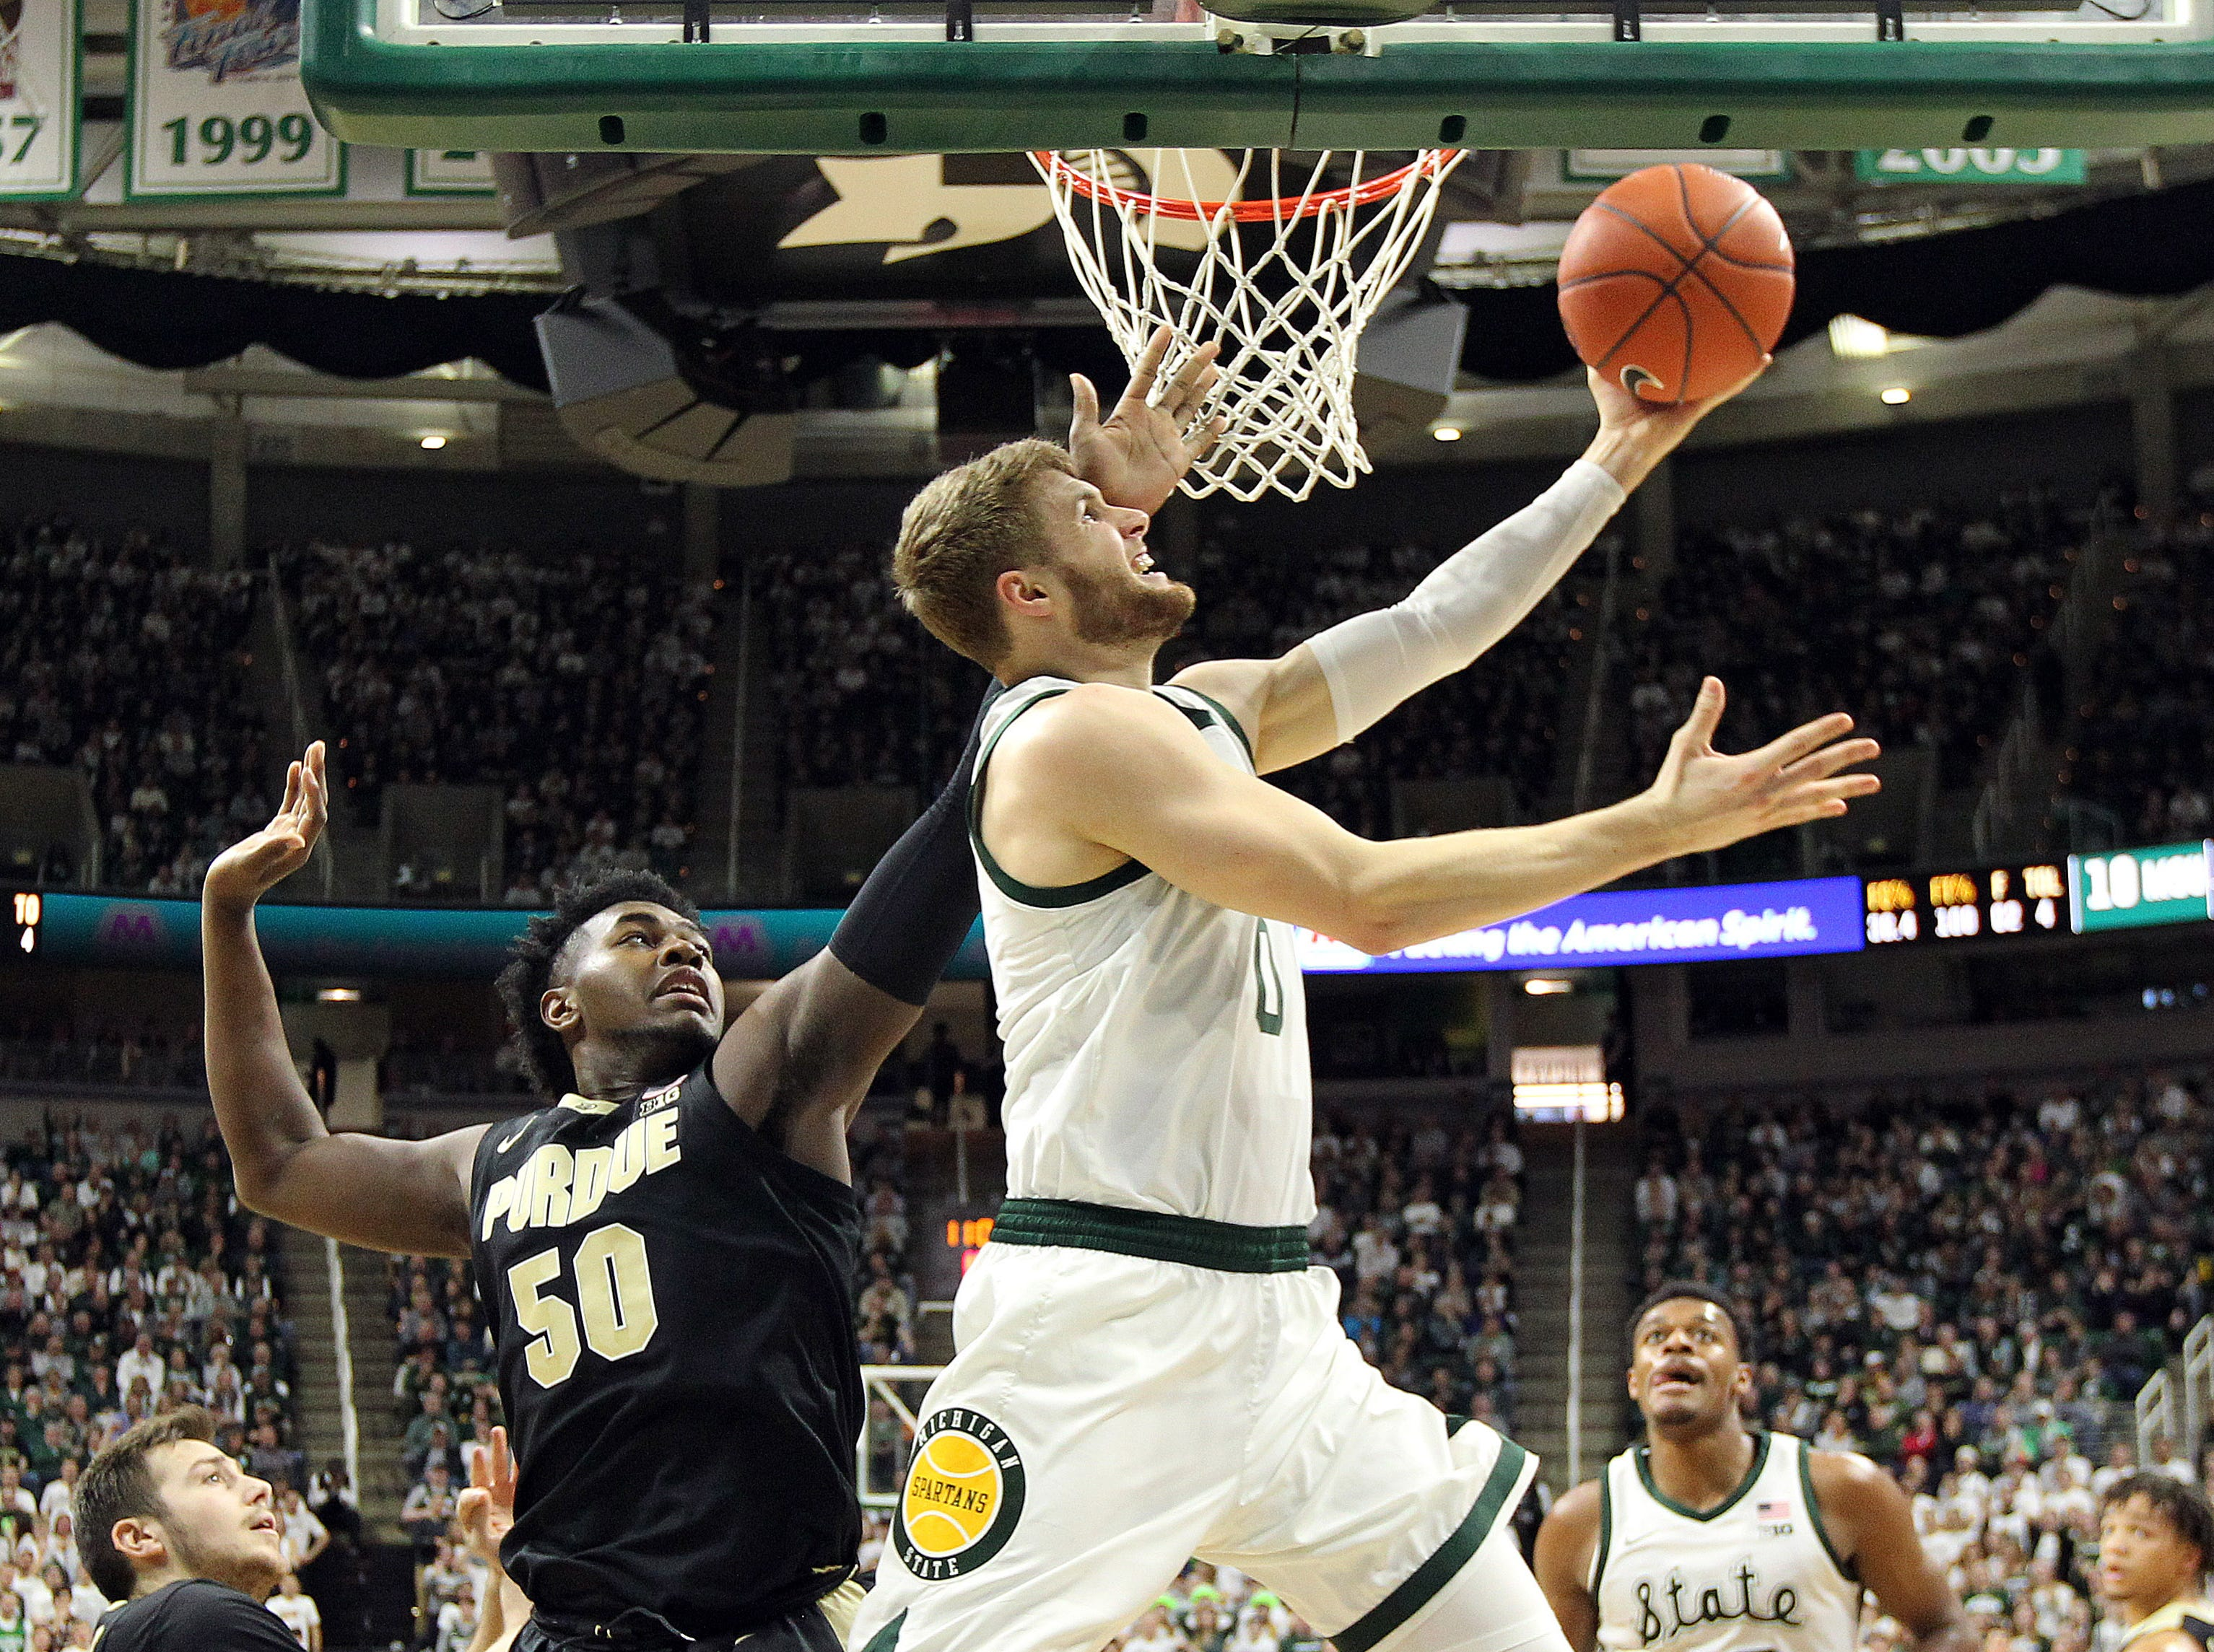 Jan 8, 2019; East Lansing, MI, USA; Michigan State Spartans forward Kyle Ahrens (0) lays the ball up in front of Purdue Boilermakers forward Trevion Williams (50) during the first half at the Breslin Center. Mandatory Credit: Mike Carter-USA TODAY Sports